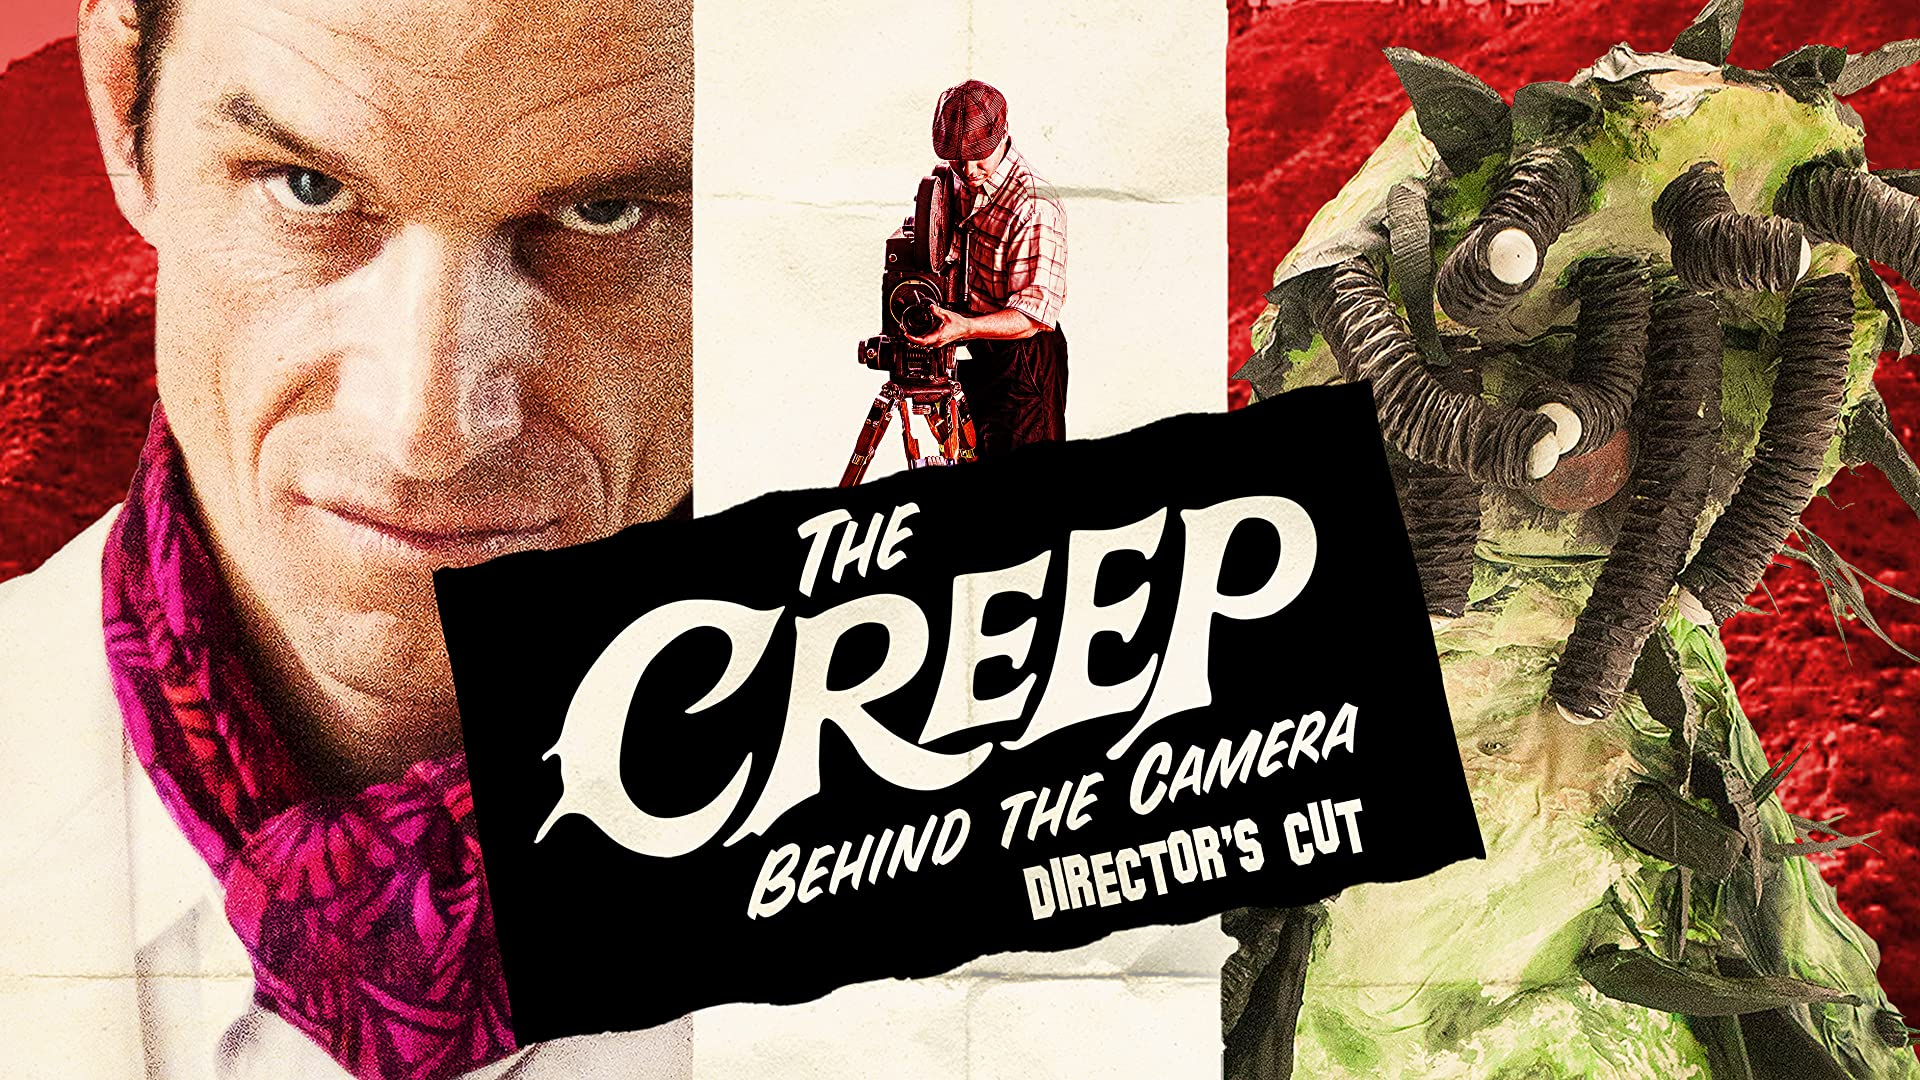 The Creep Behind The Camera: The Director's Cut